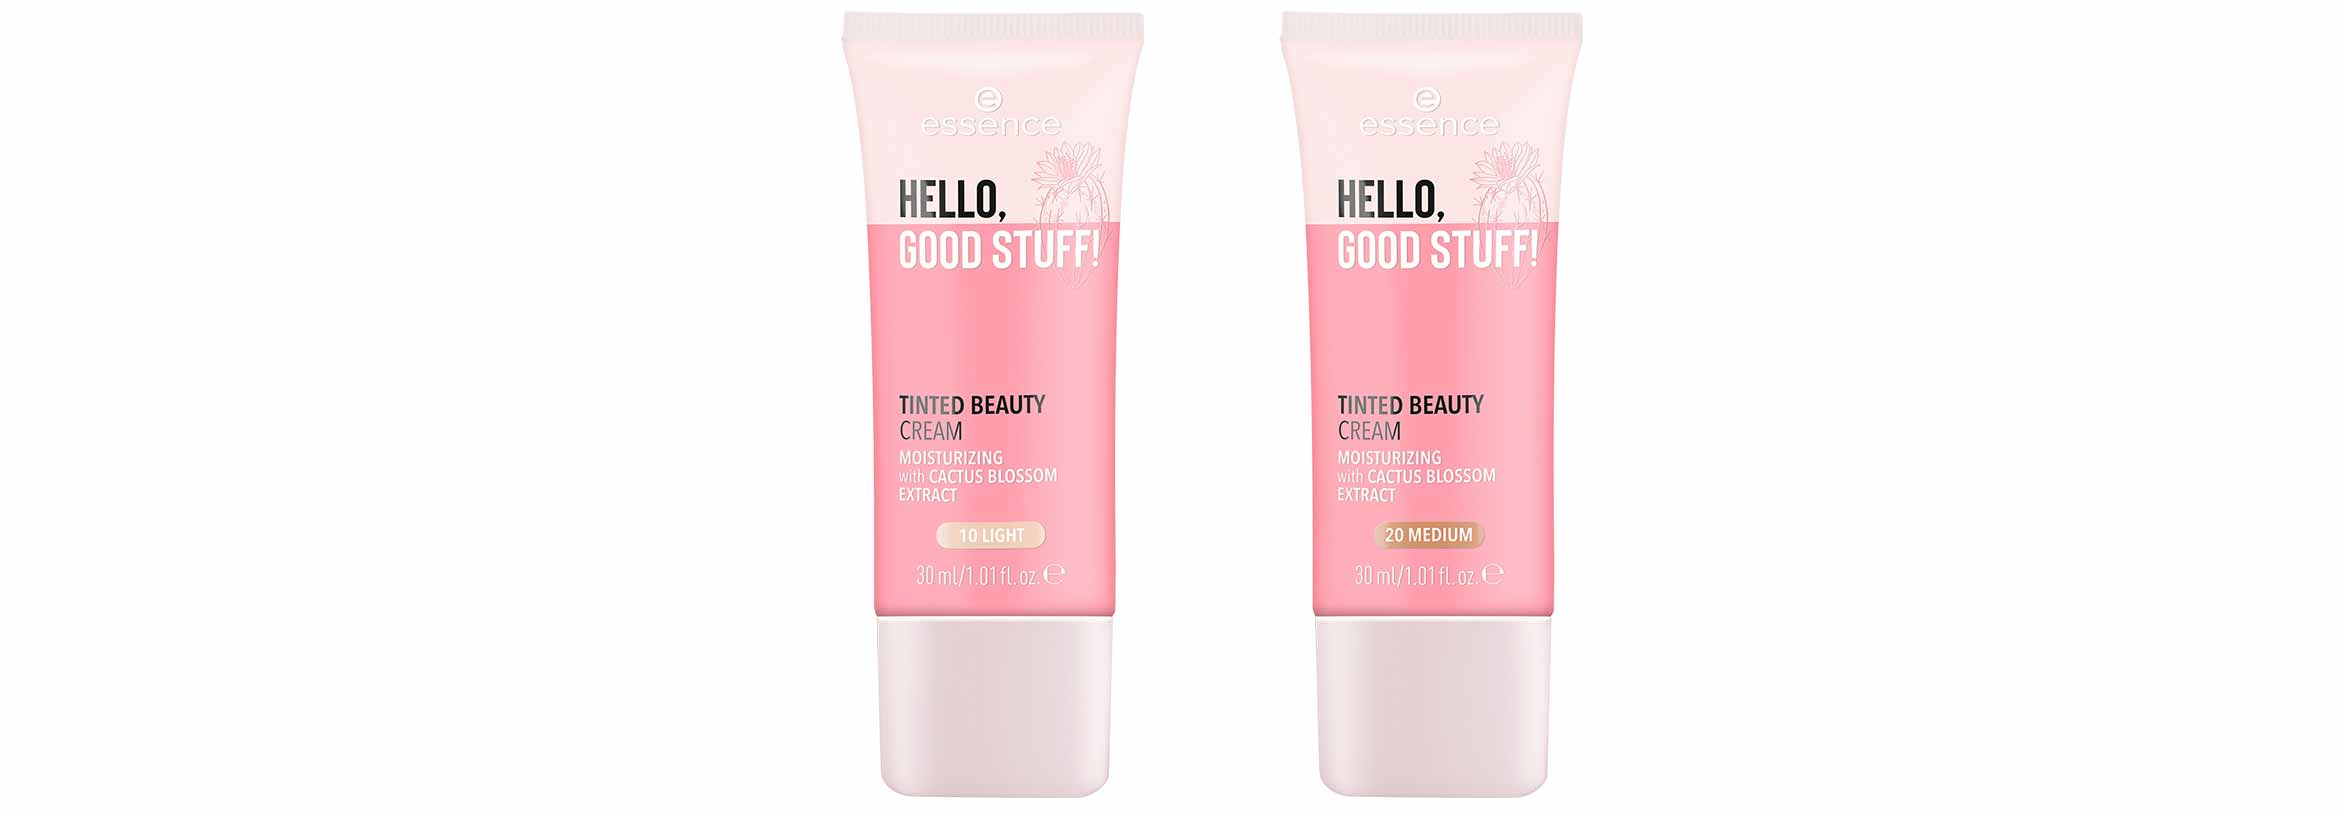 essence hello, good stuff tinted beauty cream